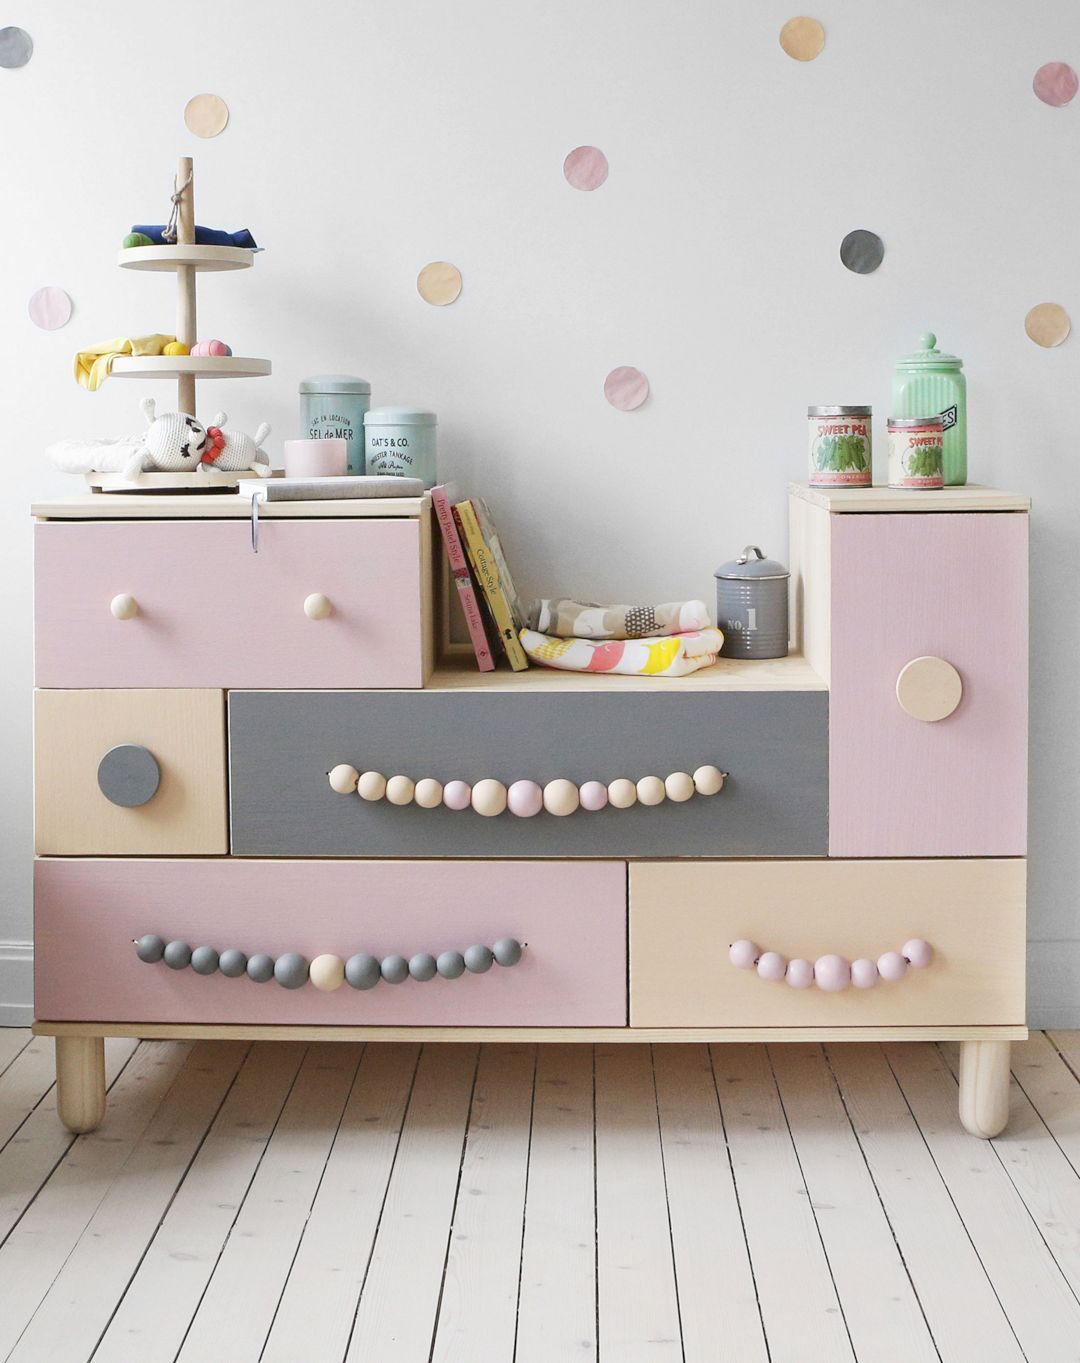 Best Charming Kid's Room Decor Ideas   Room decor, Kids s and Kids on hide television design ideas, bedroom designs, western bedroom ideas, bedroom wall art, shelving ideas, bedroom shelf for candles, storage for small bedrooms ideas, beautiful bedroom ideas,